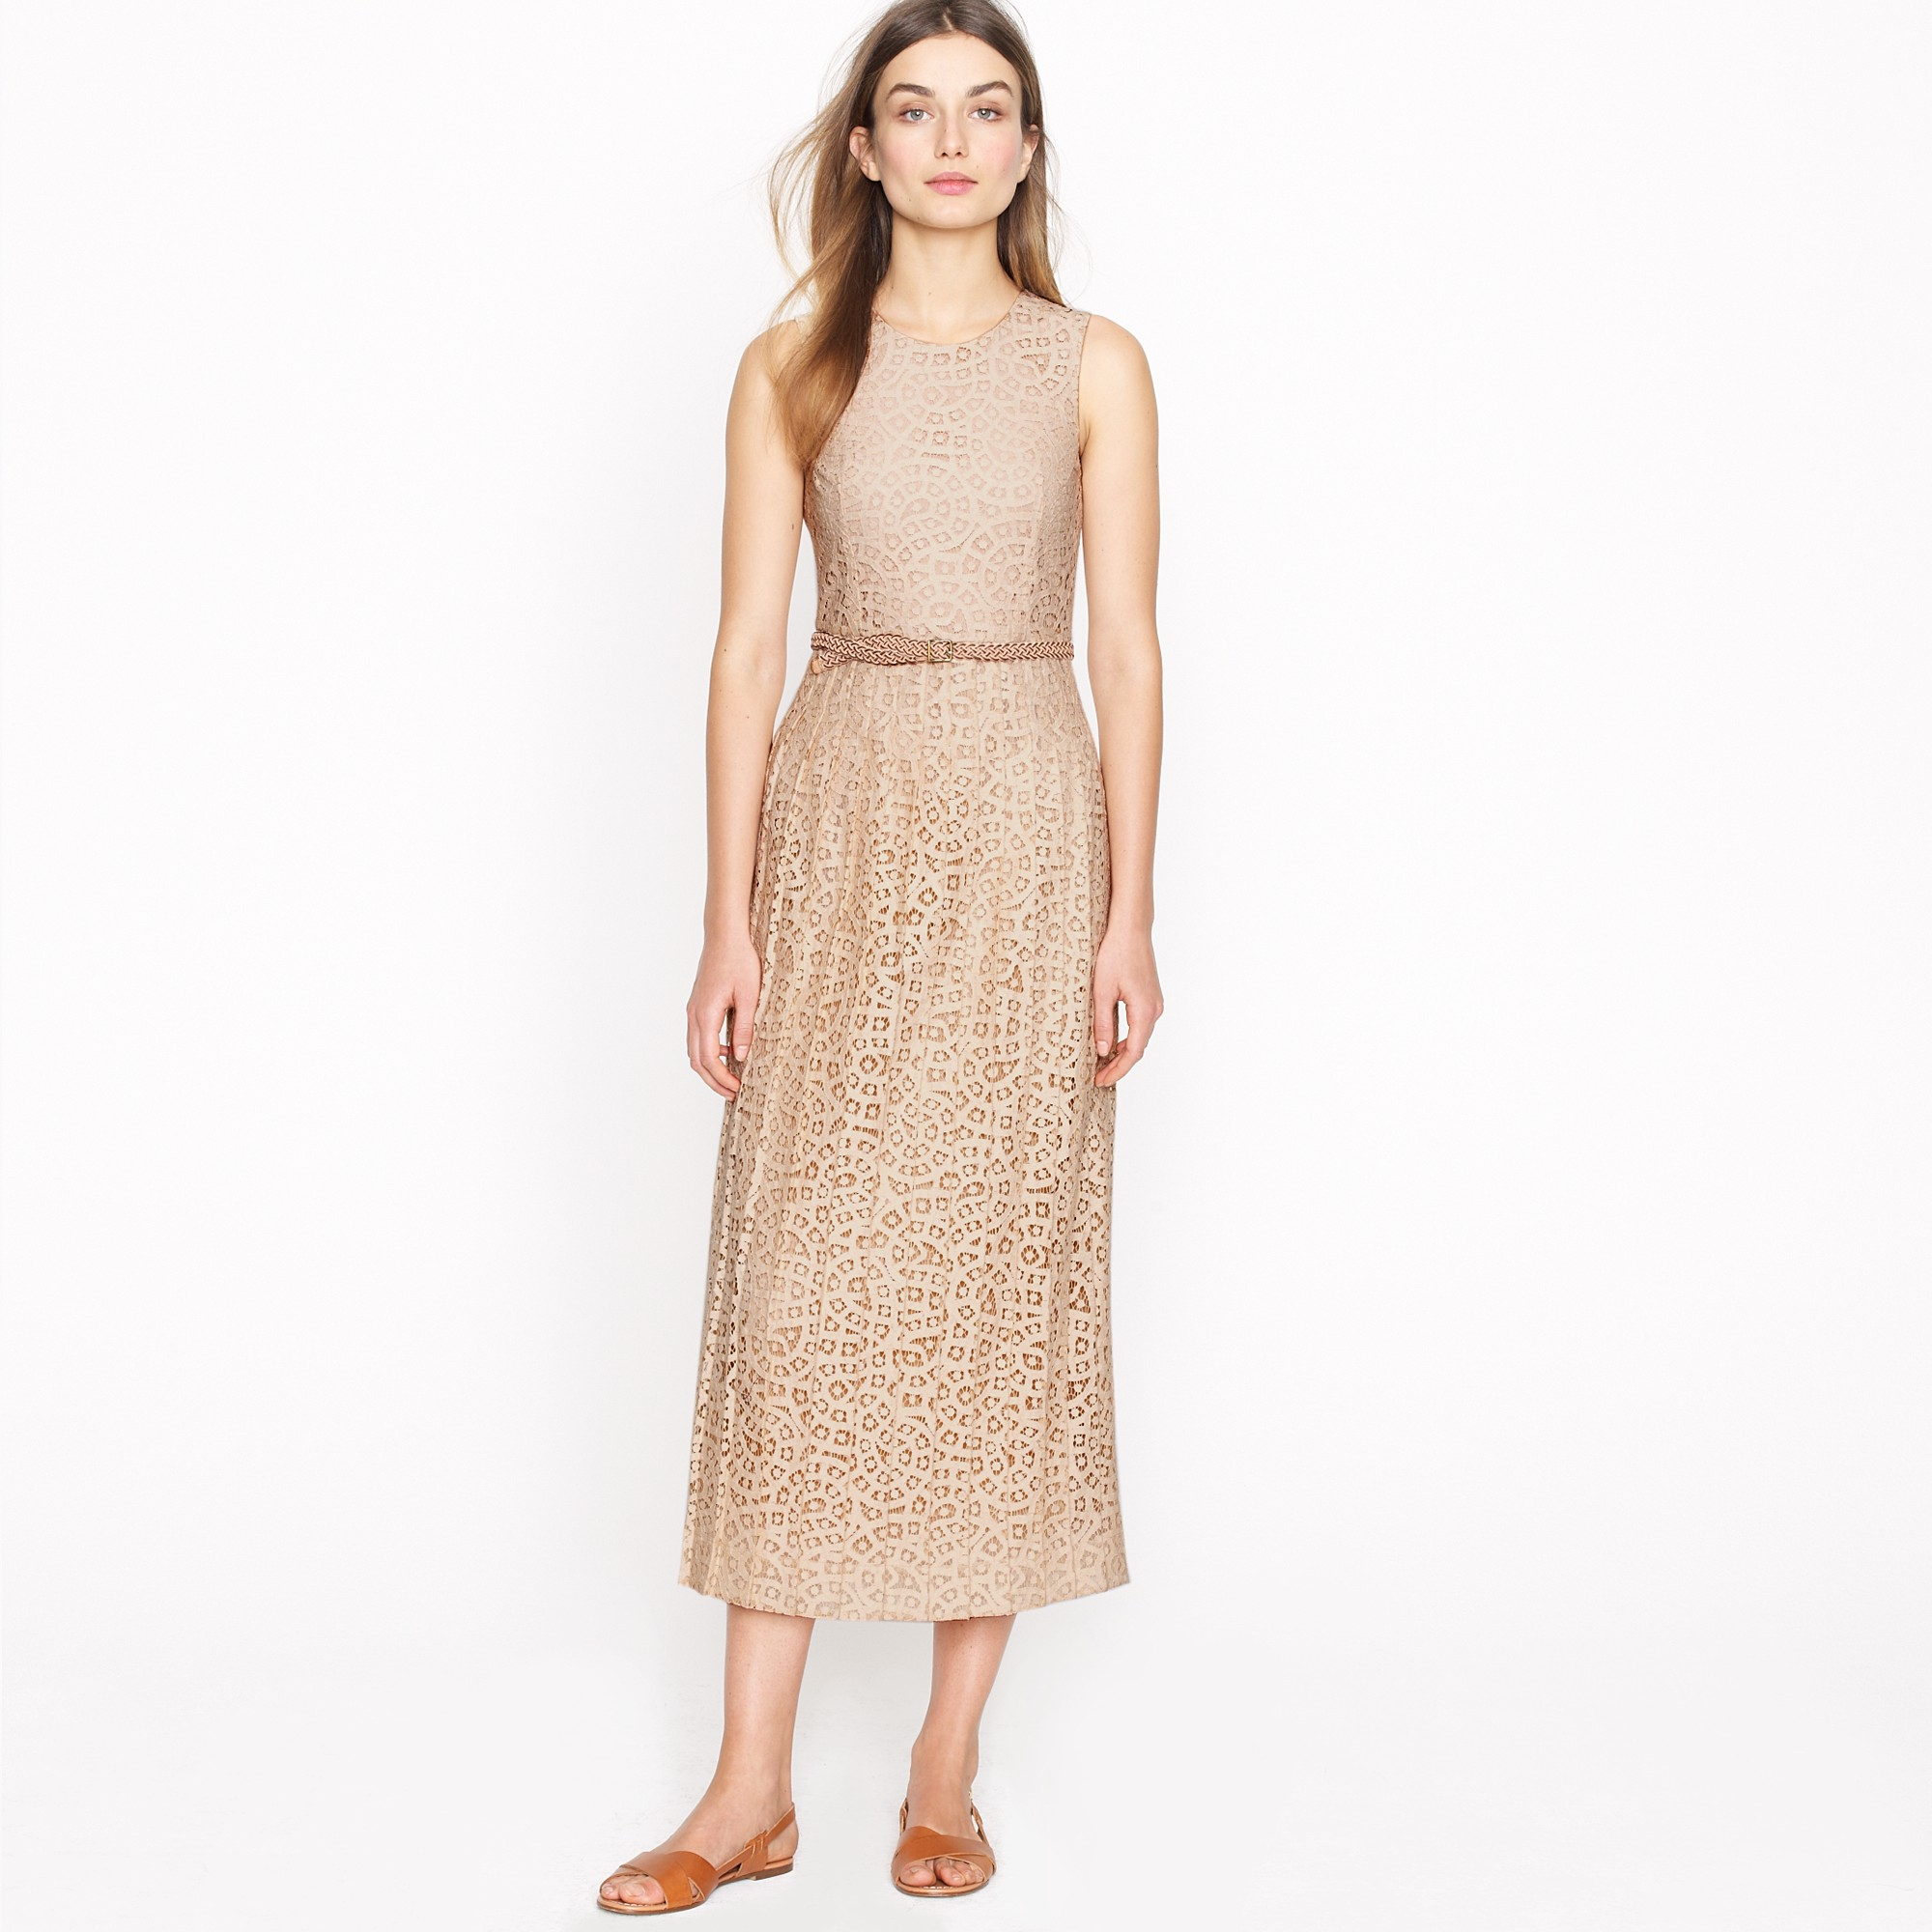 Nature Dress: J.Crew Frances Dress In Raindrop Lace In Natural